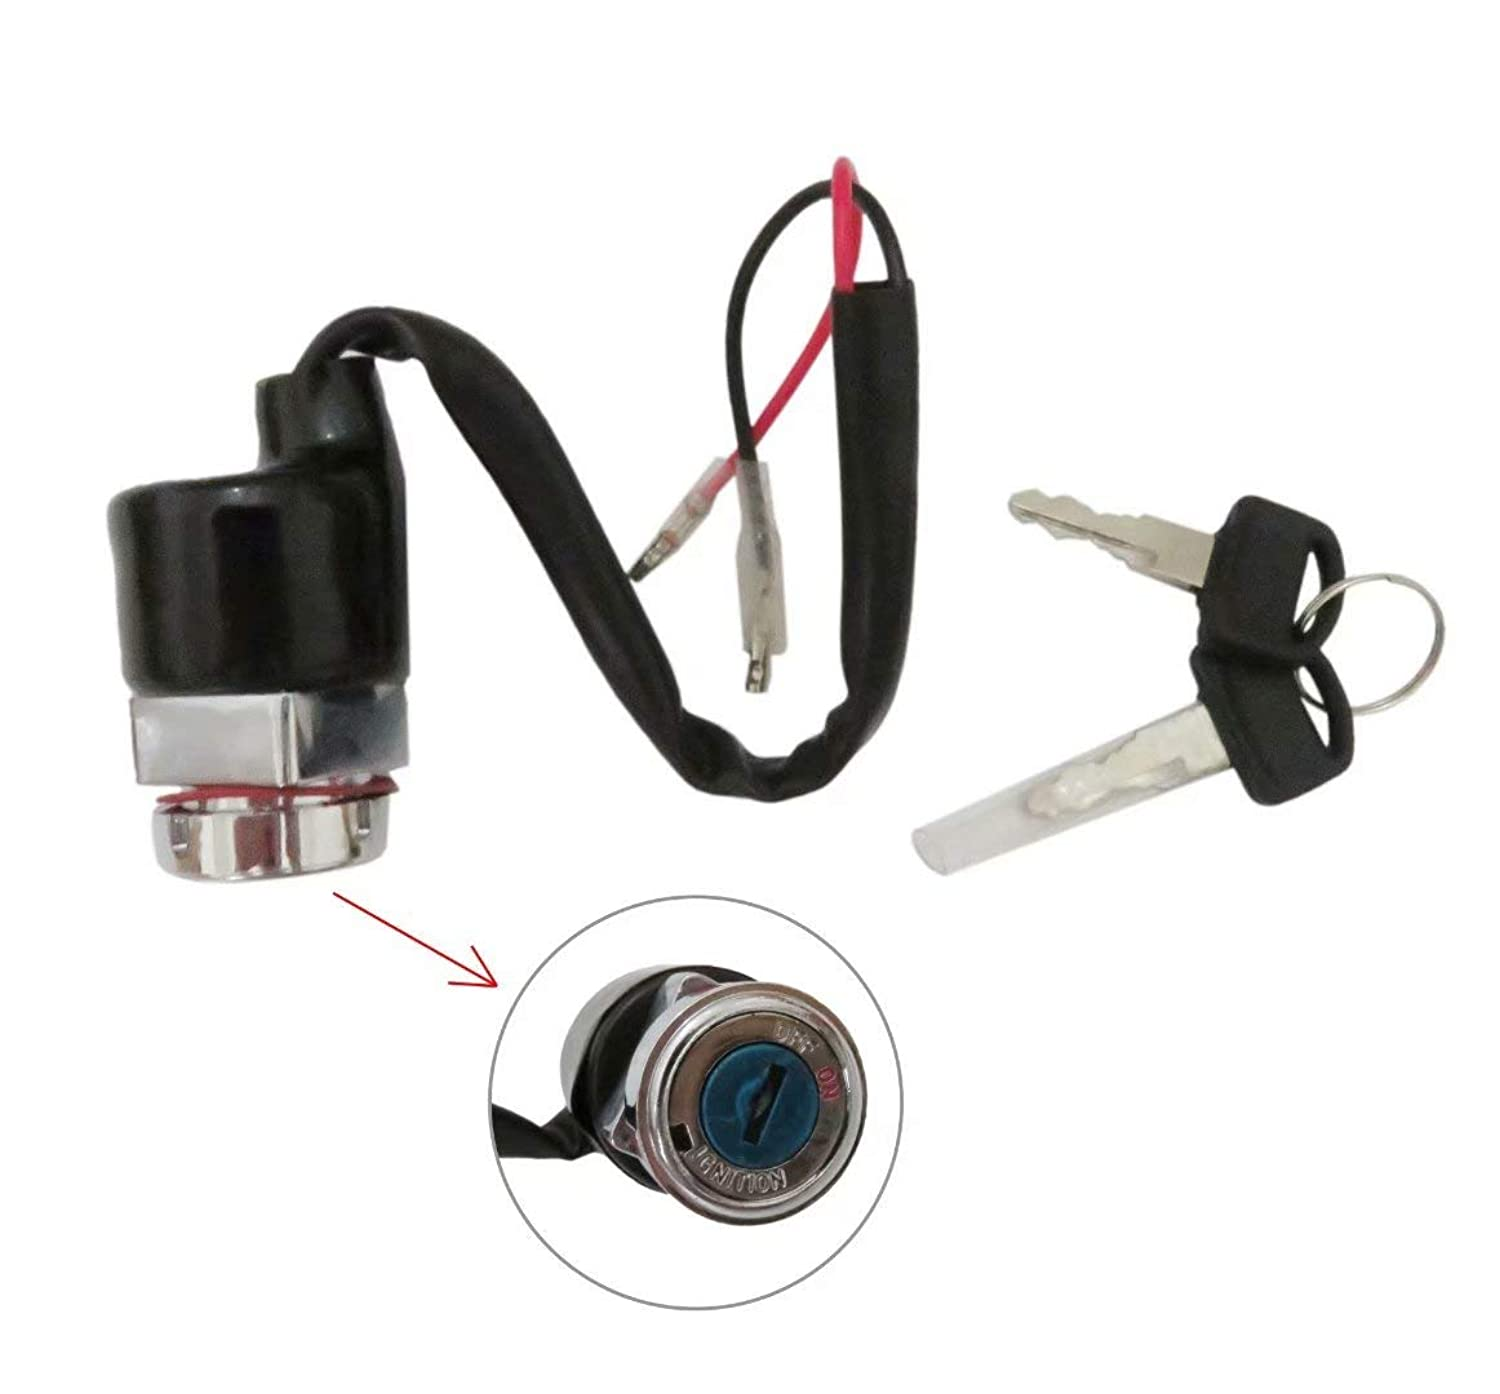 Ignition Switch Fits Honda Replaces OE #35010-111-671, 35010-028-010, 35100-324-761, 35100-324-760